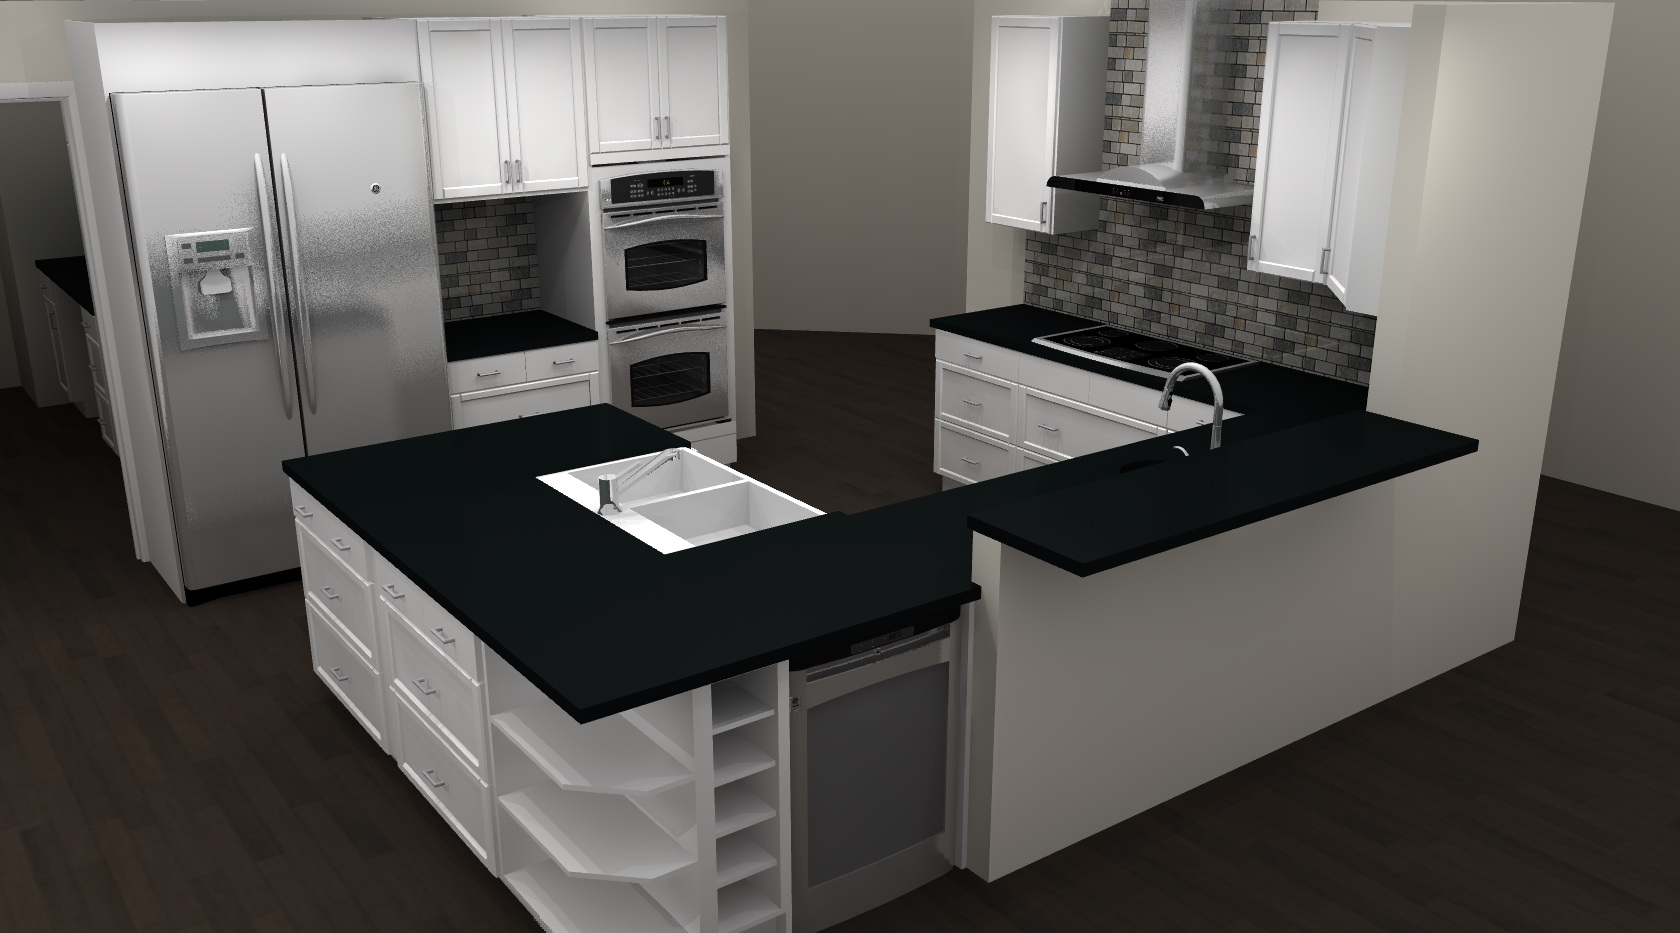 like mullet 80s kitchen gone out of style ikea kitchen remodel IKEA Kitchen Remodel Brandon Render 1